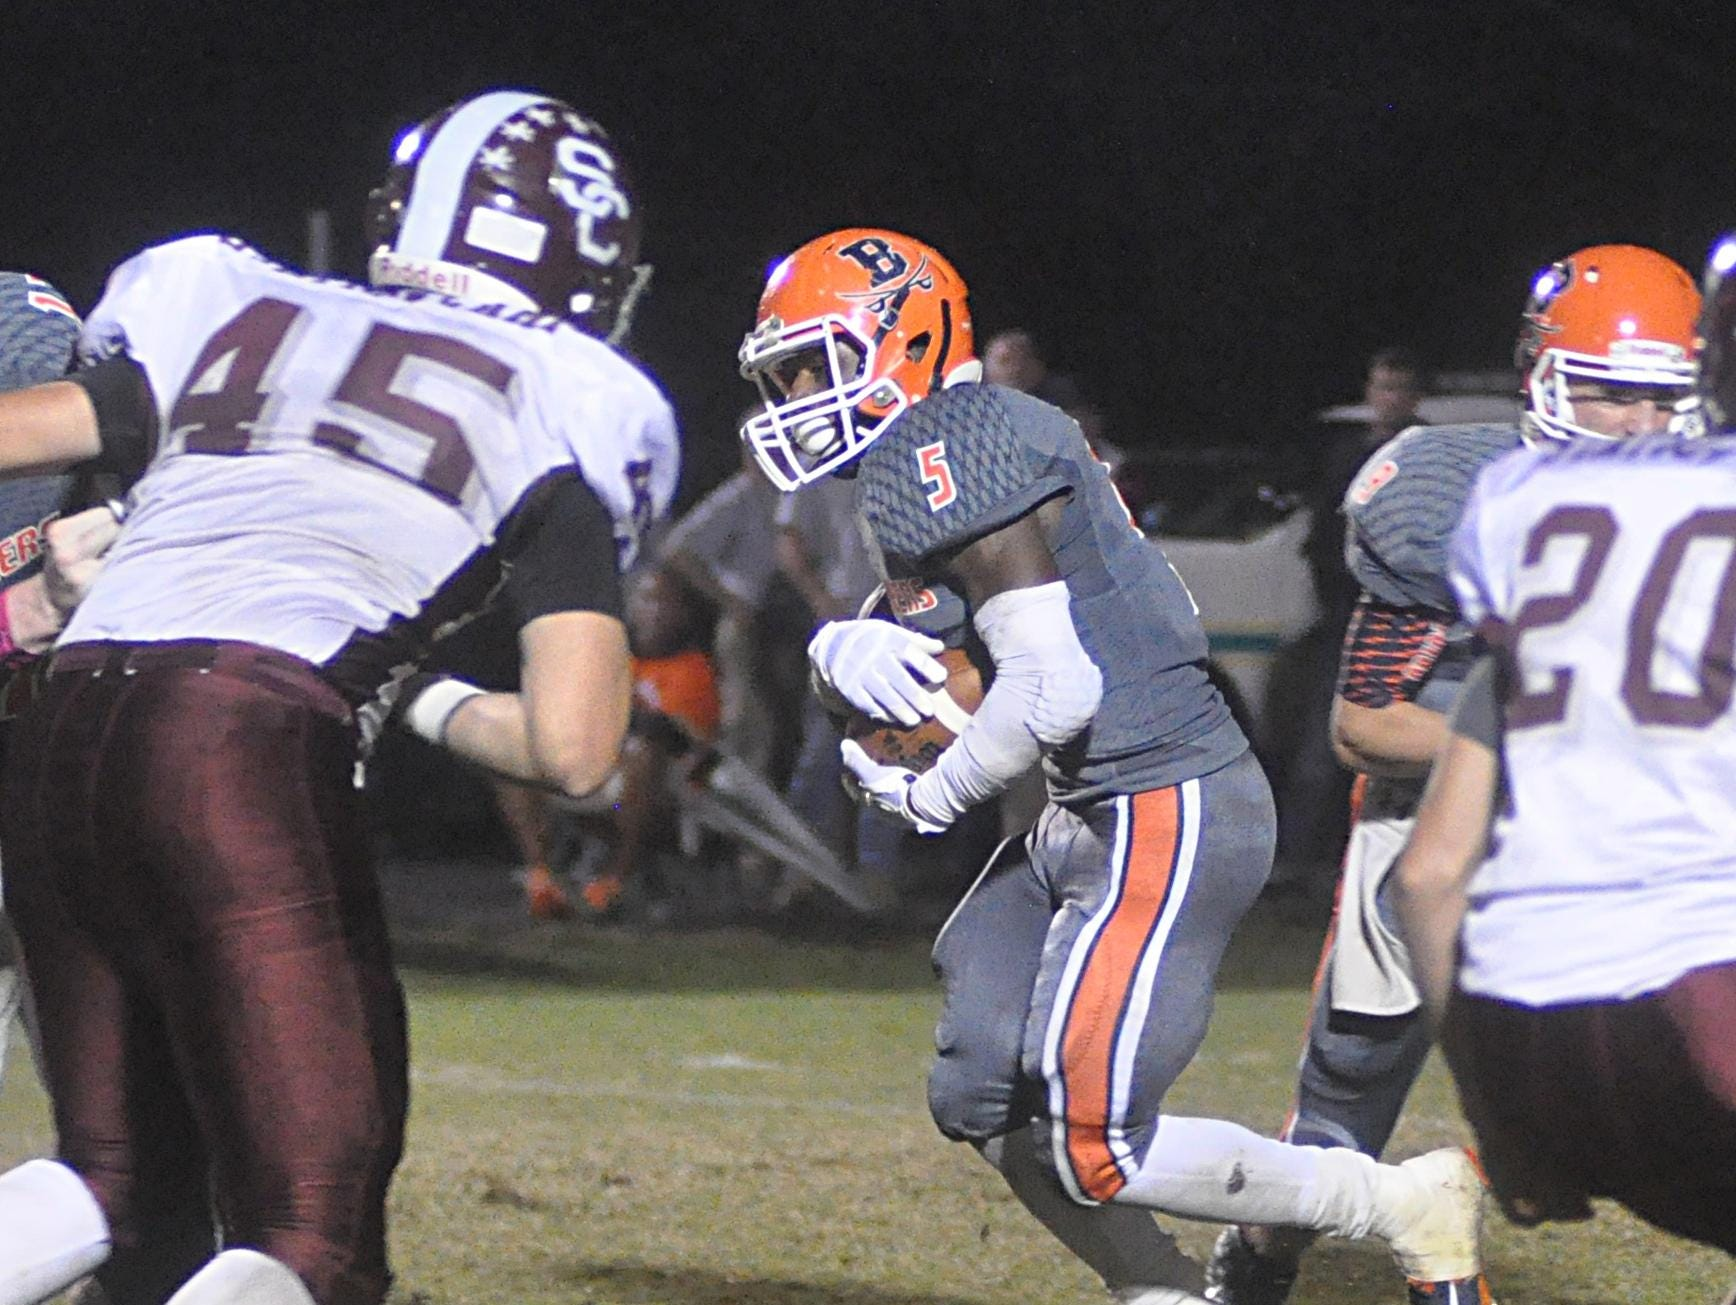 Beech senior Rodrick Napper carries the ball the first-quarter. Napper rushed for 176 yards and two touchdowns on 18 carries.